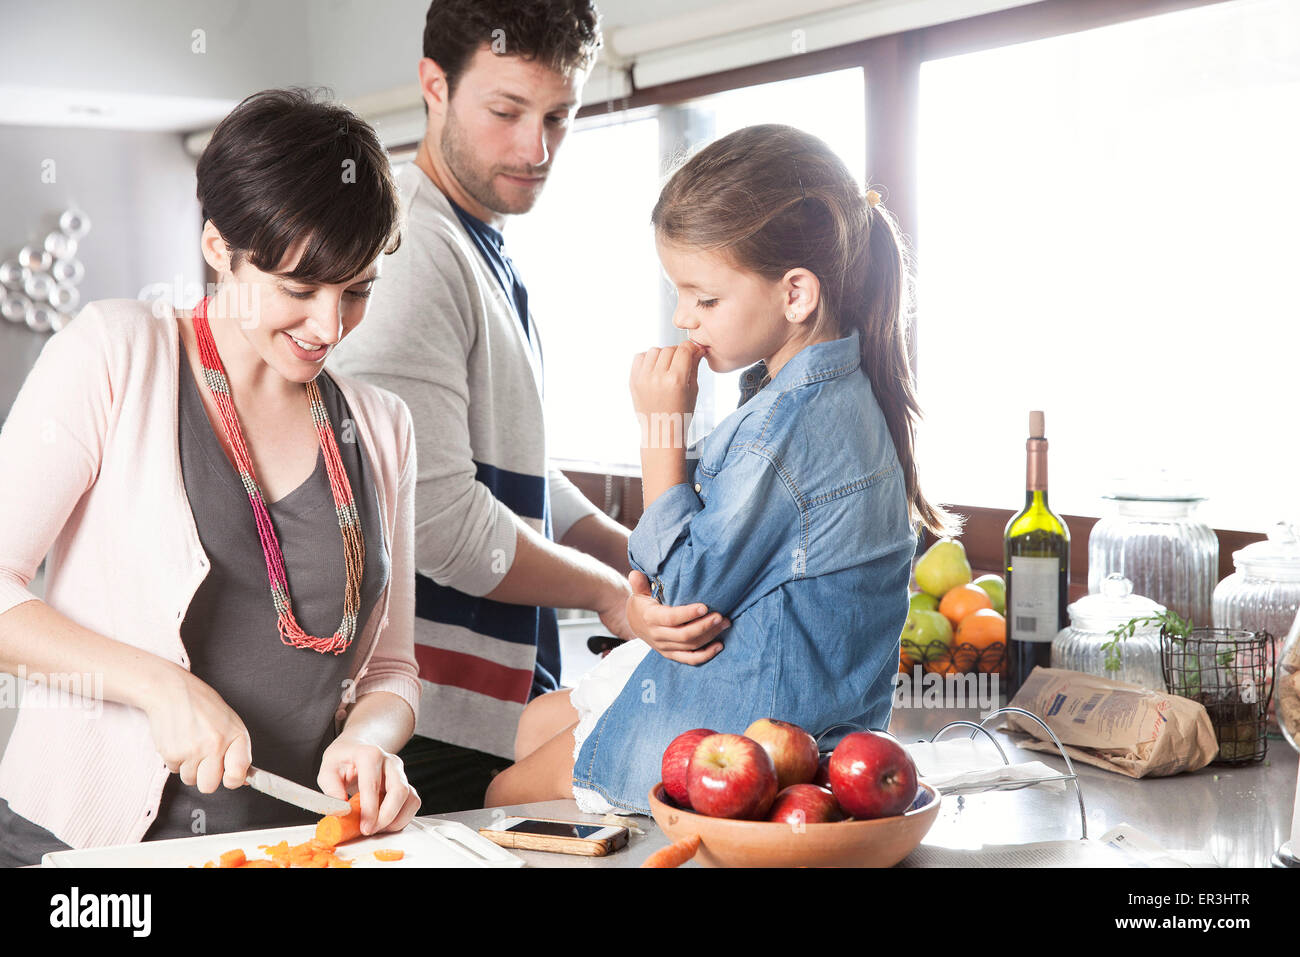 Family preparing food together in kitchen - Stock Image